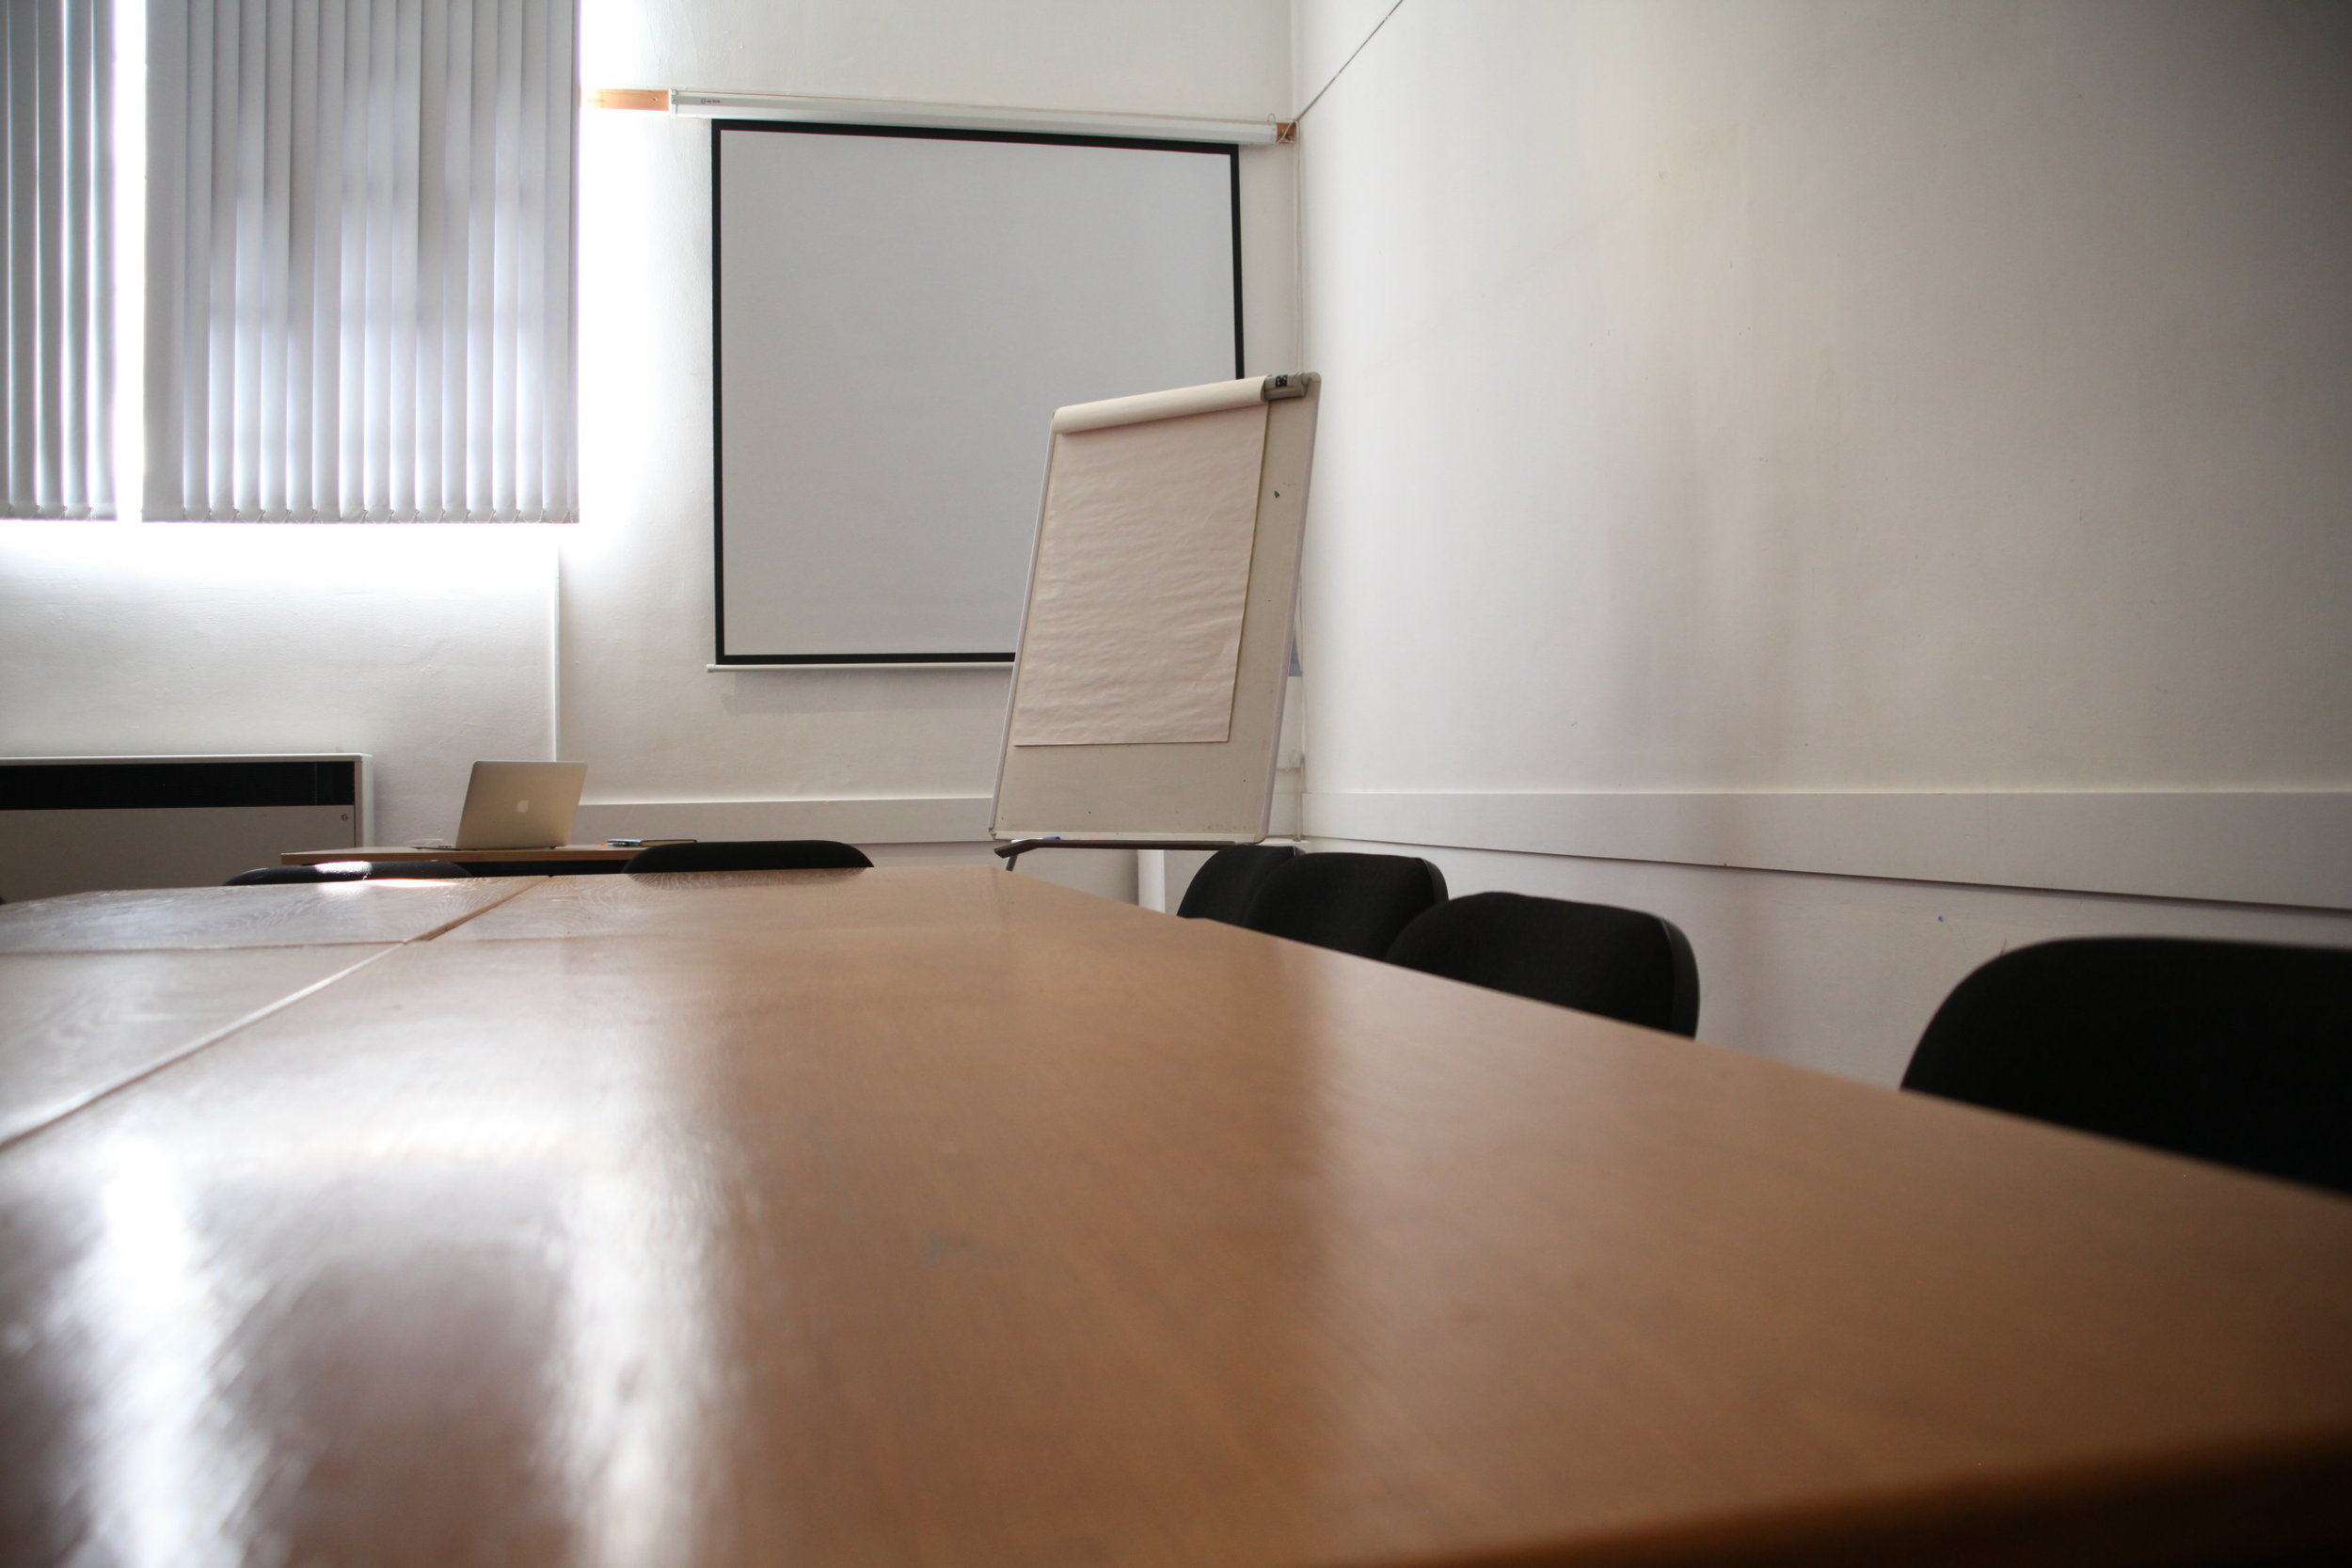 Meeting Room - Our meeting room is very popular with clubs, speaker societies and meditation groups. The space can accommodate between 20 -30 people cinema style and is perfect for small presentations or a breakout room for larger conferences. Room size: 23'4